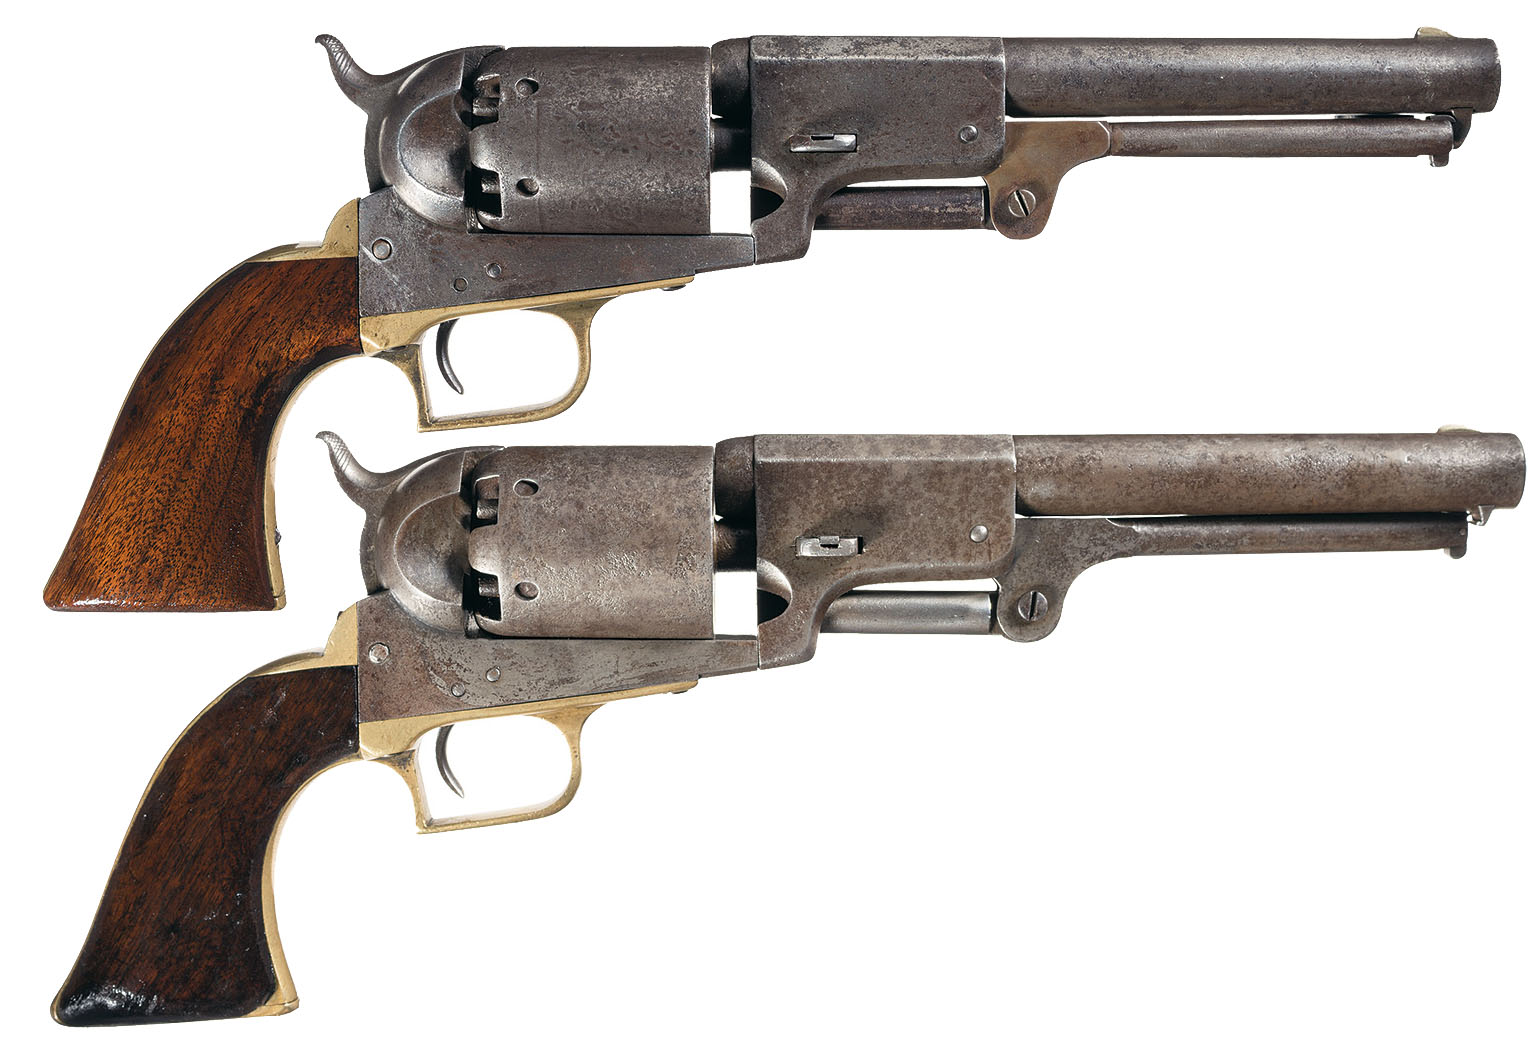 Colt Dragoon Revolver Backgrounds on Wallpapers Vista